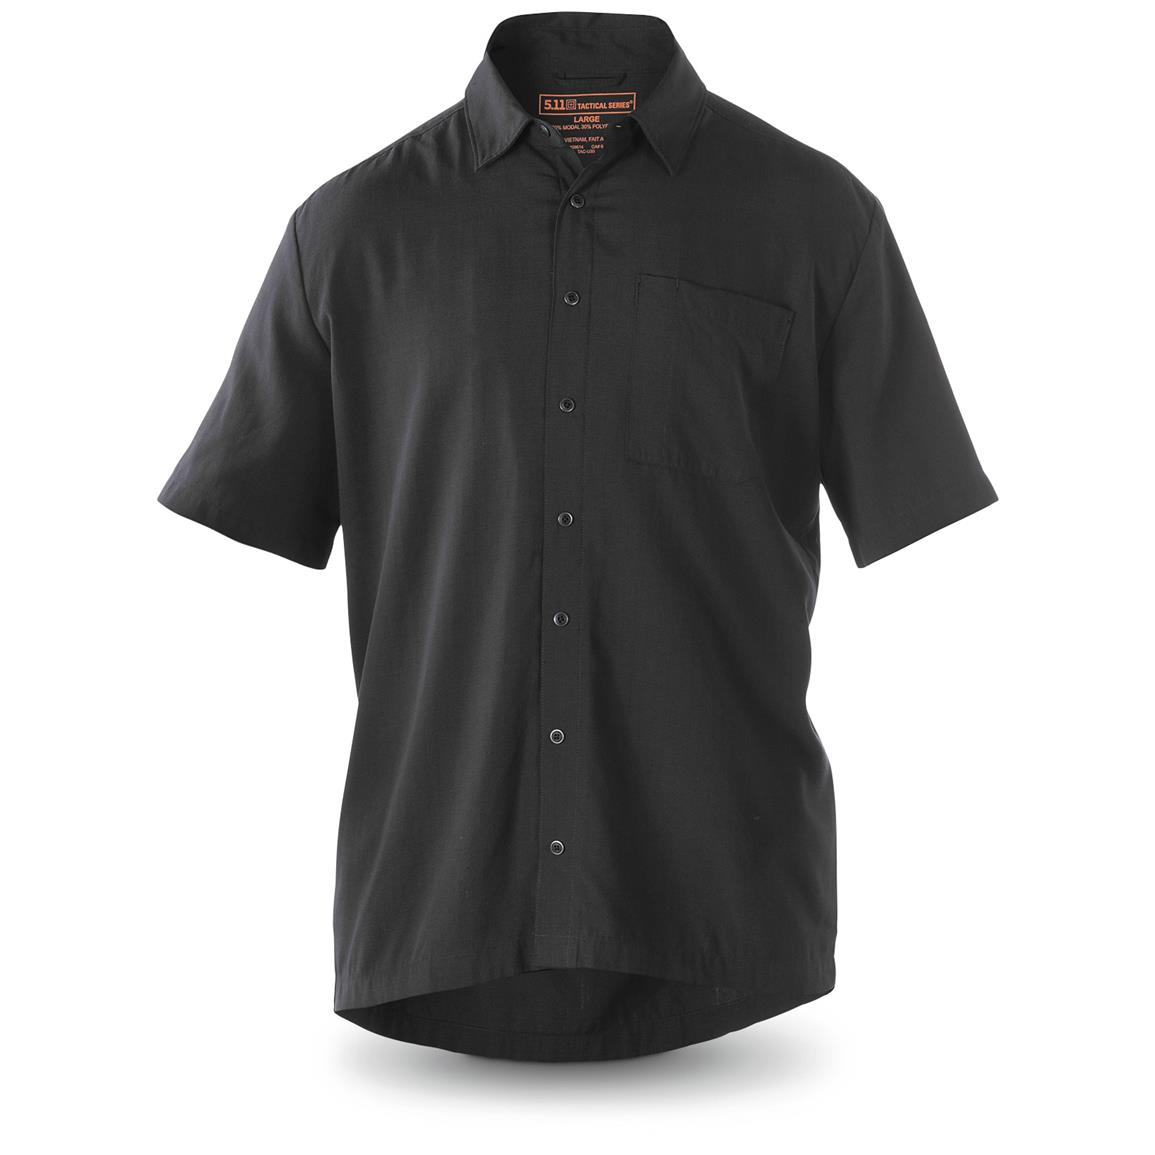 5.11 Select Covert CCW Shirt, Black